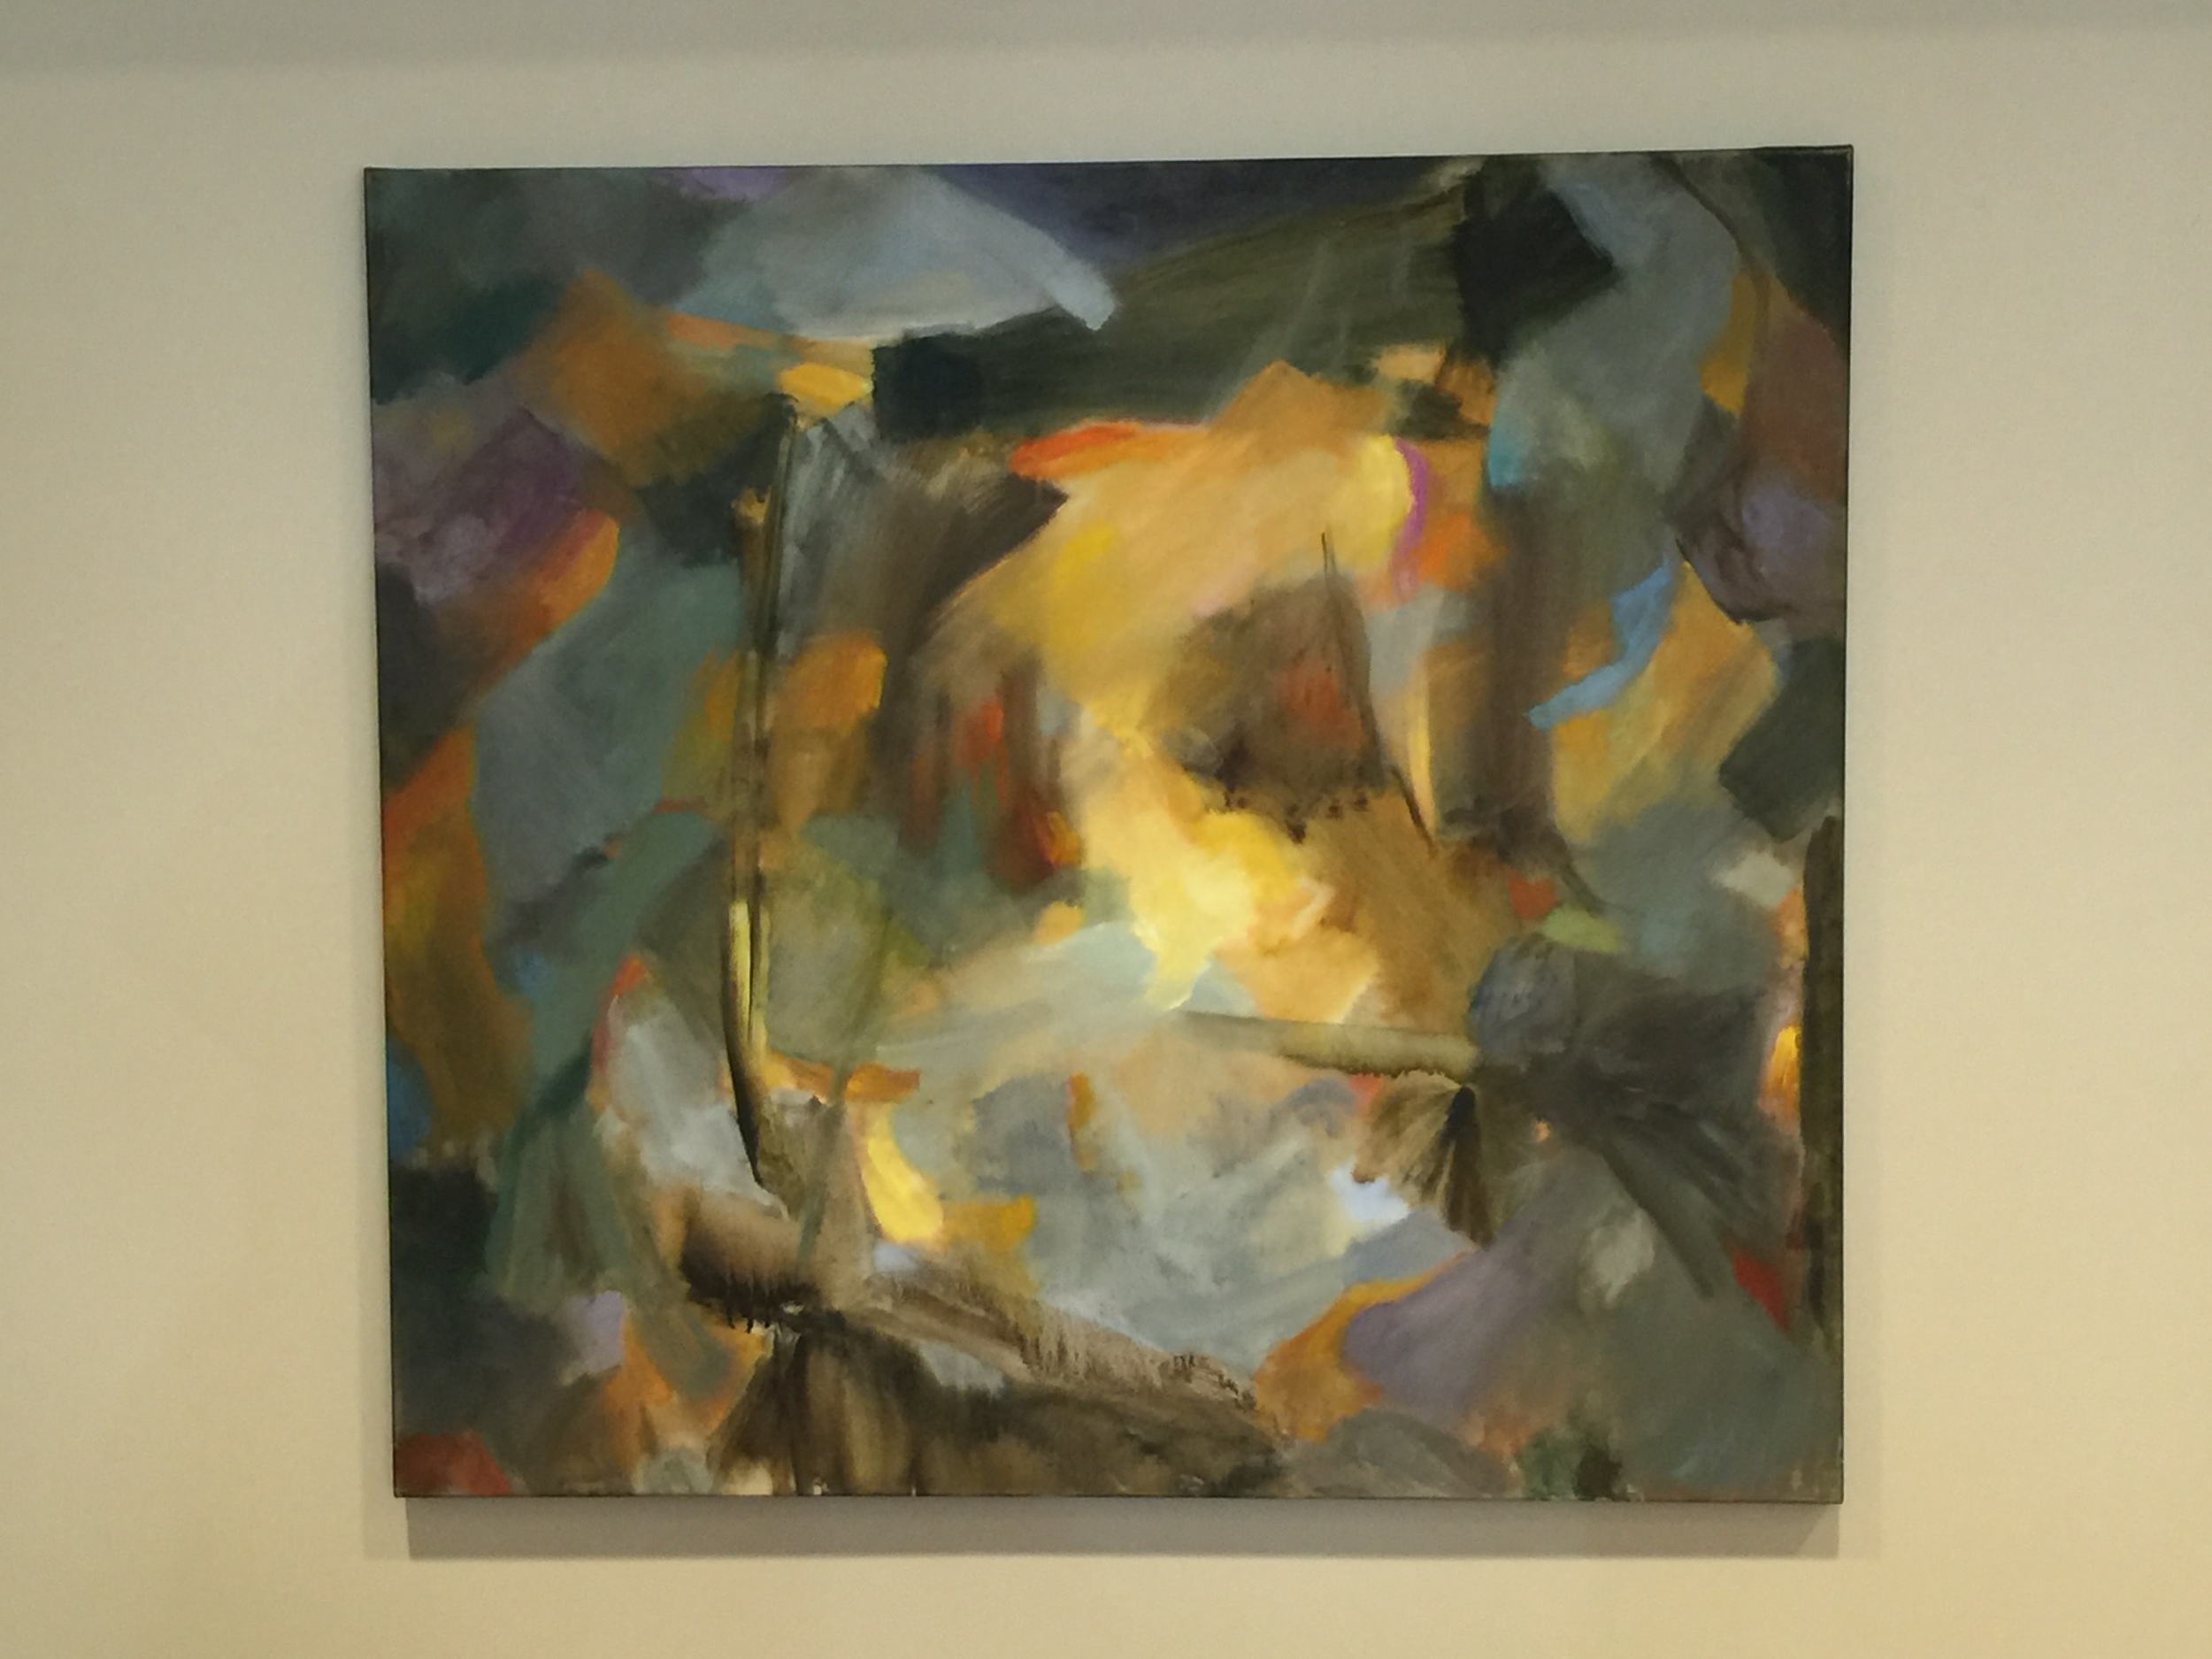 Photo of a painting by Kendal resident Ann Holloway selected by CAFA for the main lobby